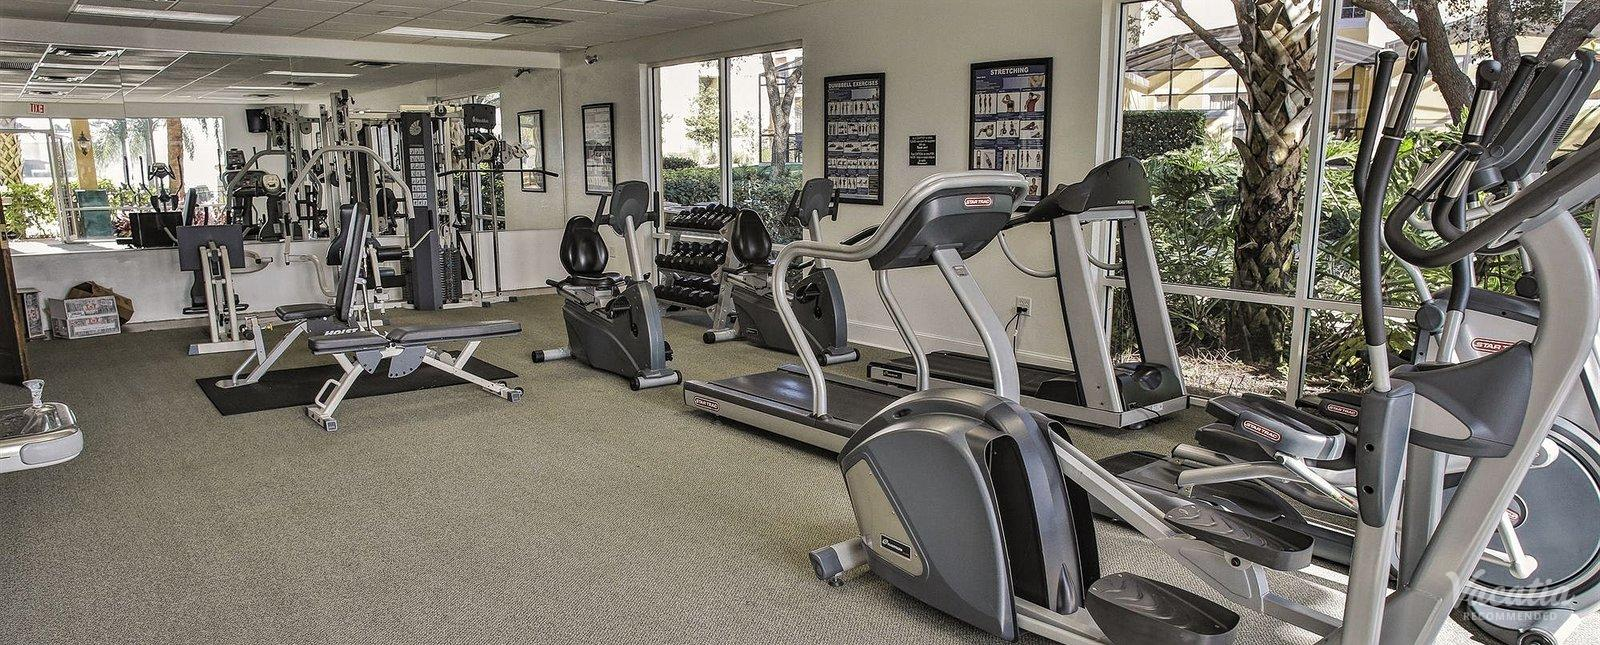 Encantada Resort Fitness Center